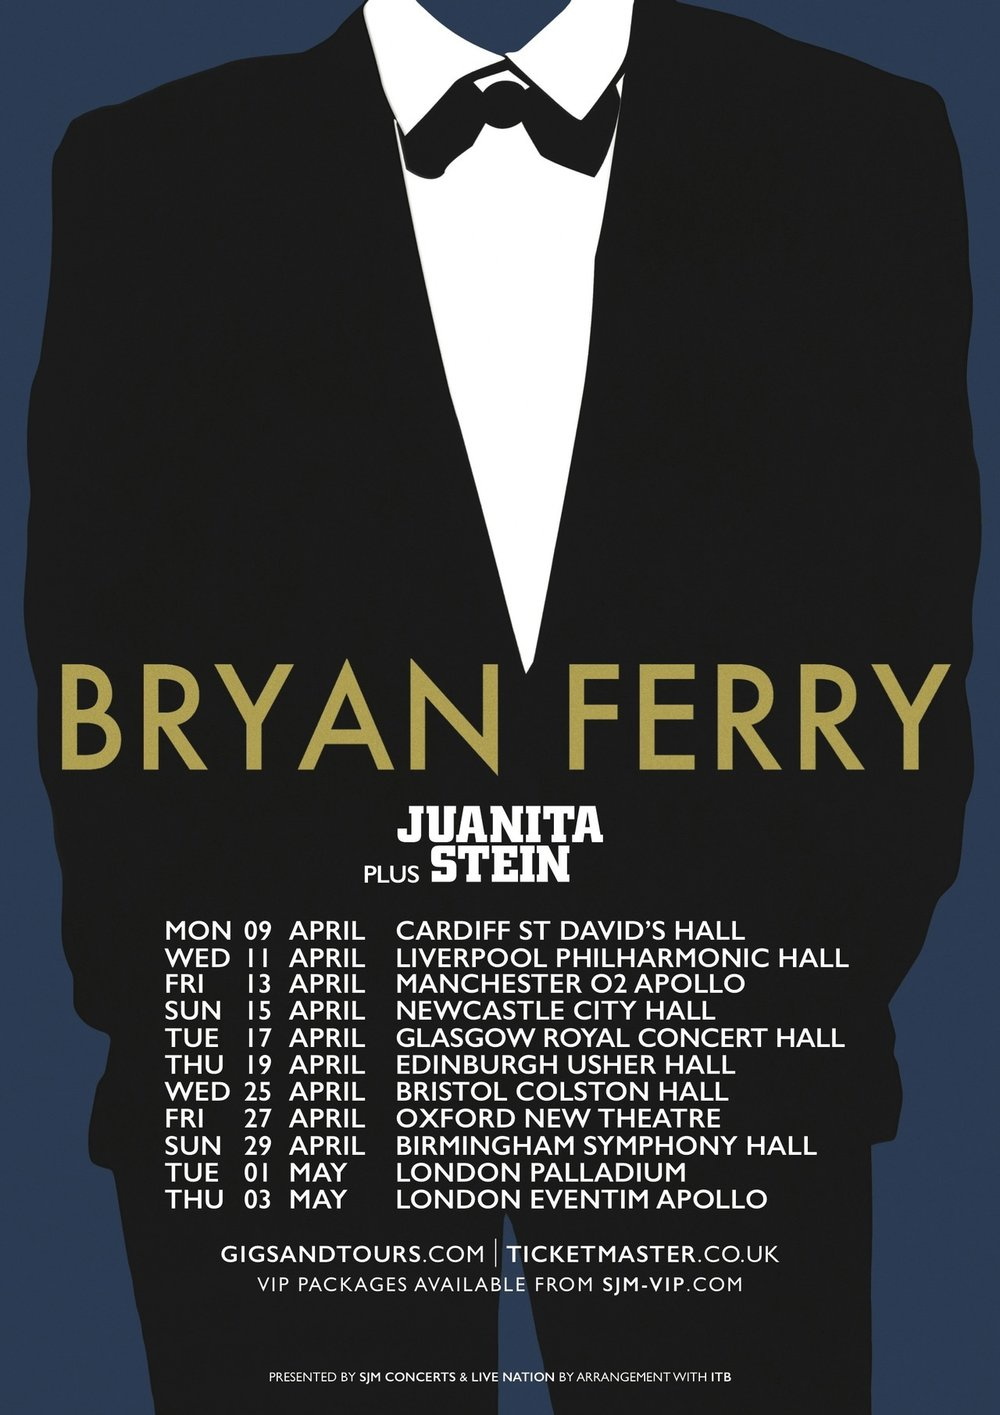 GOING ON TOUR W/BRYAN FERRY!!!💥 . Gonna be extra special, playing theatres throughout the UK and Ireland.  See poster for dates.  See ya there!!!